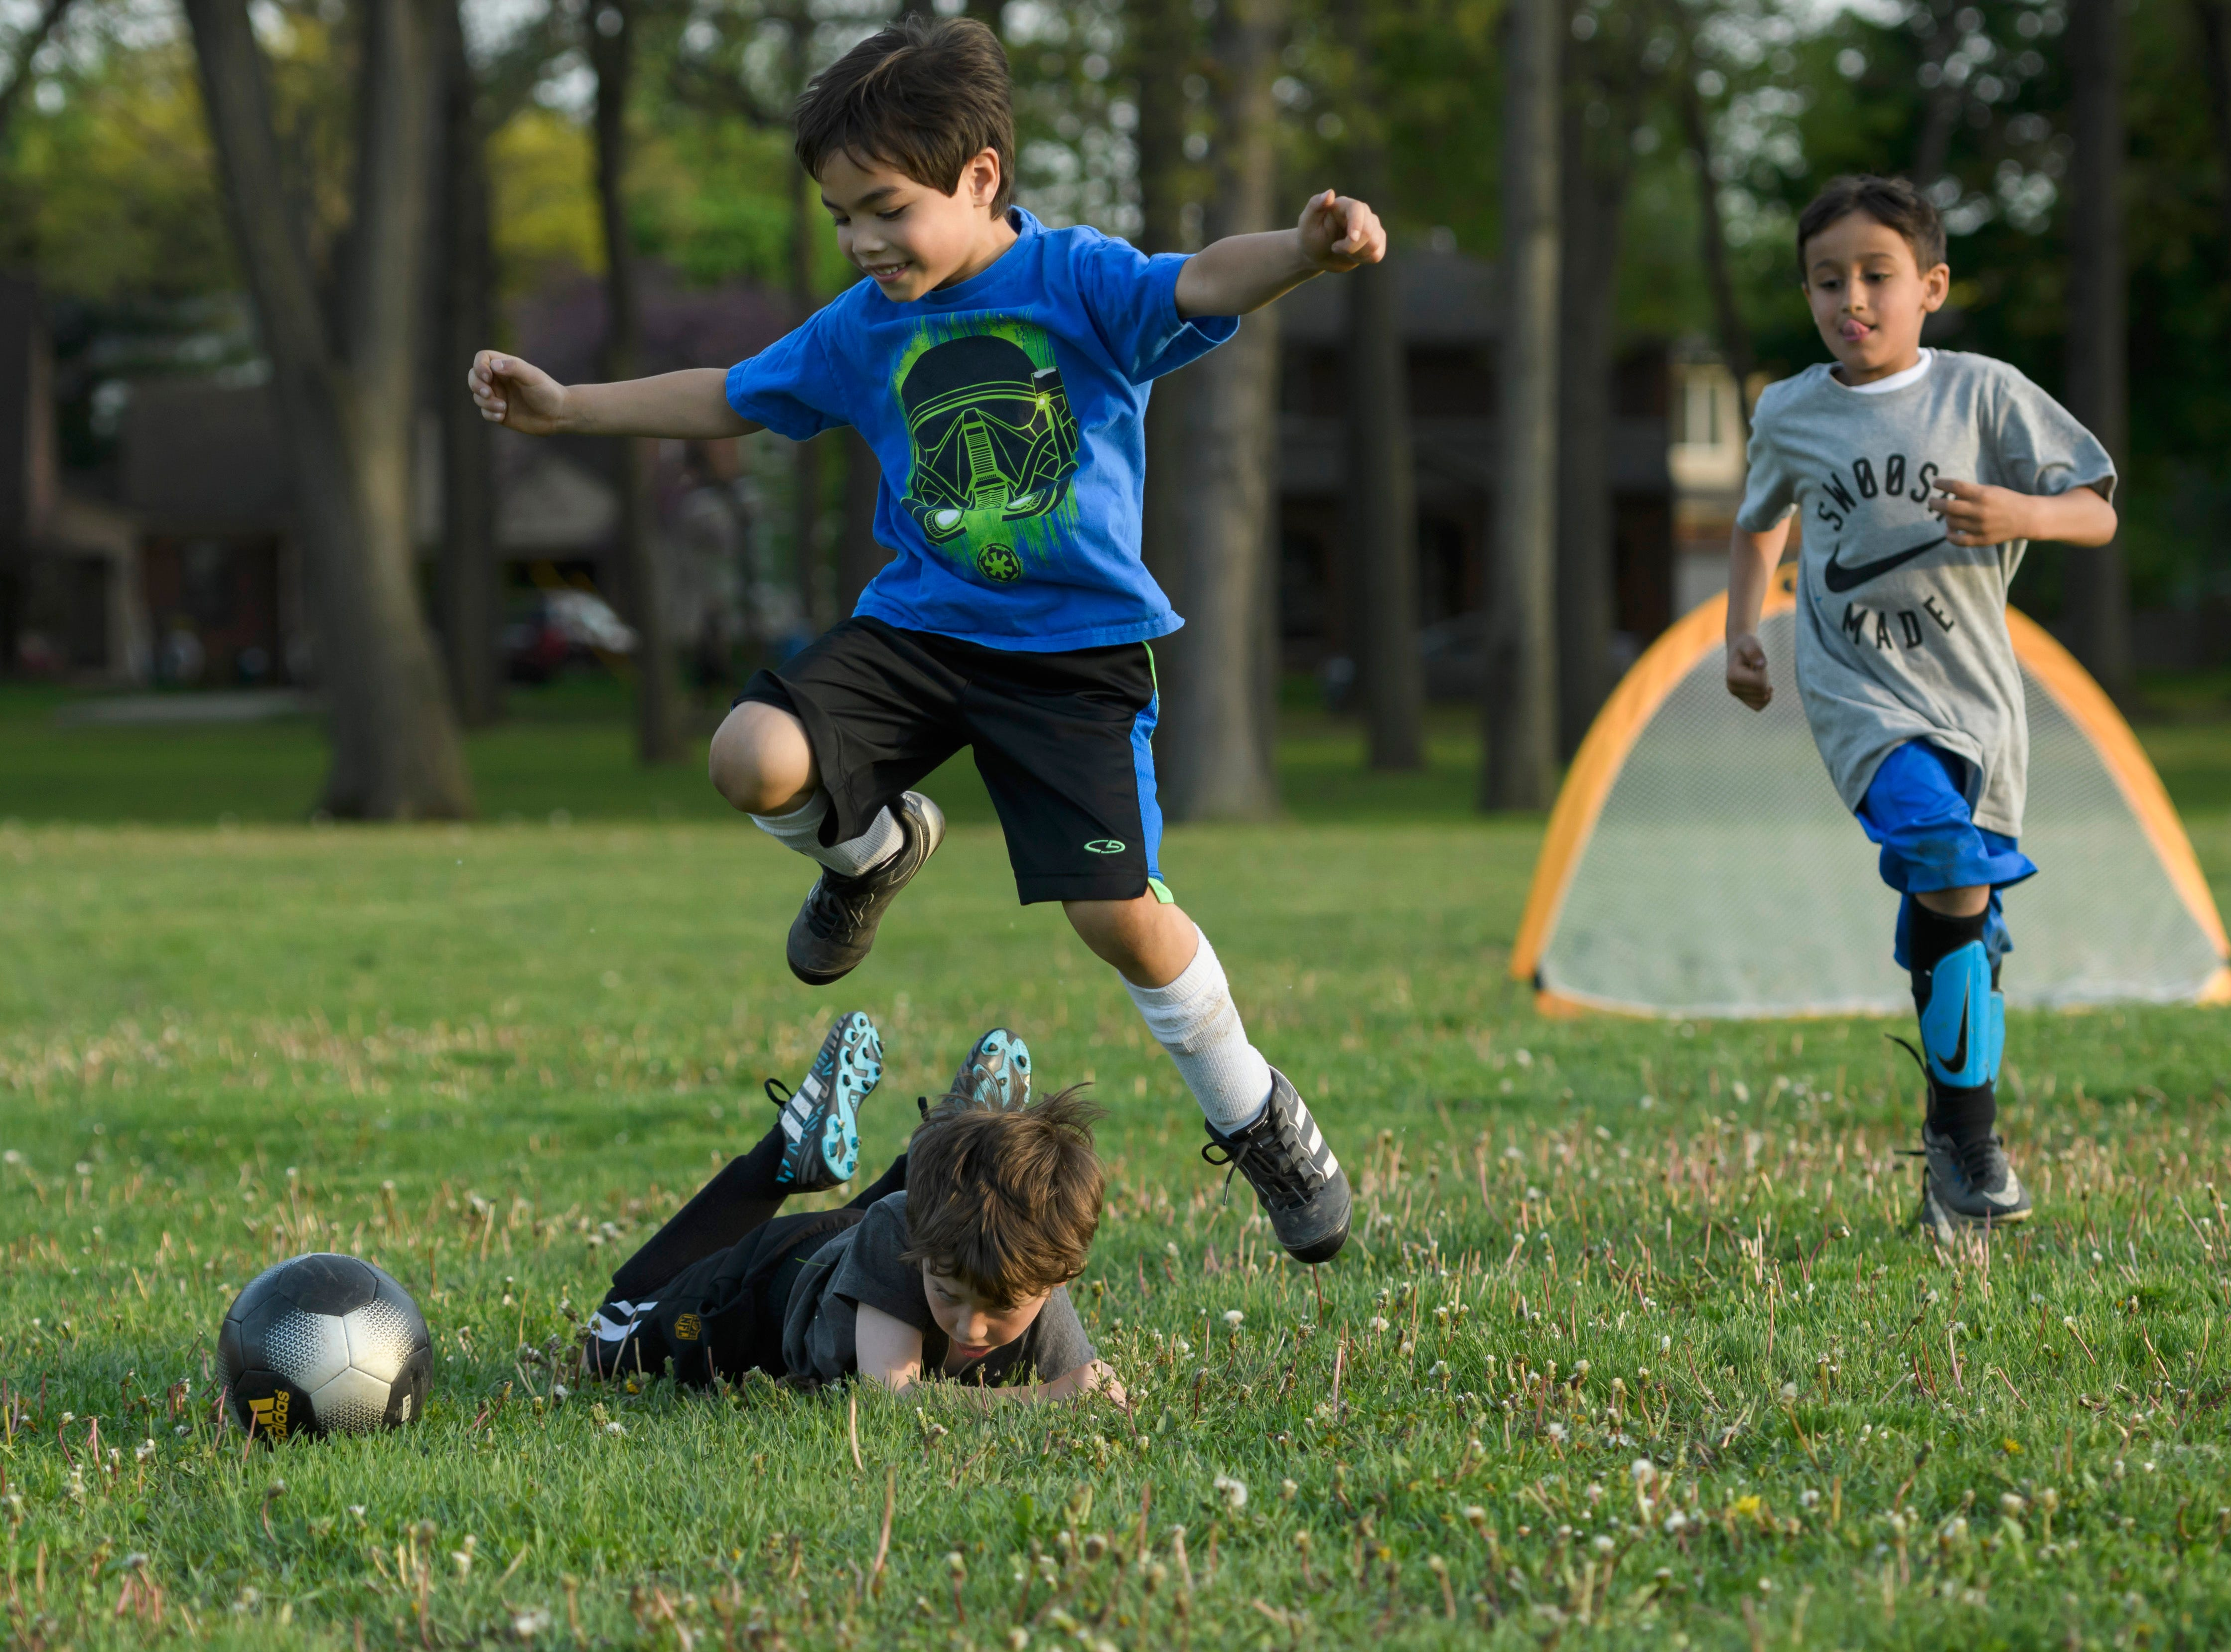 Carson Post leaps over the top of Owen Sanderson-Price while chasing after the ball during Dearborn Cougars 11 soccer team  practice at Howard Elementary School in Dearborn, May 16, 2018.